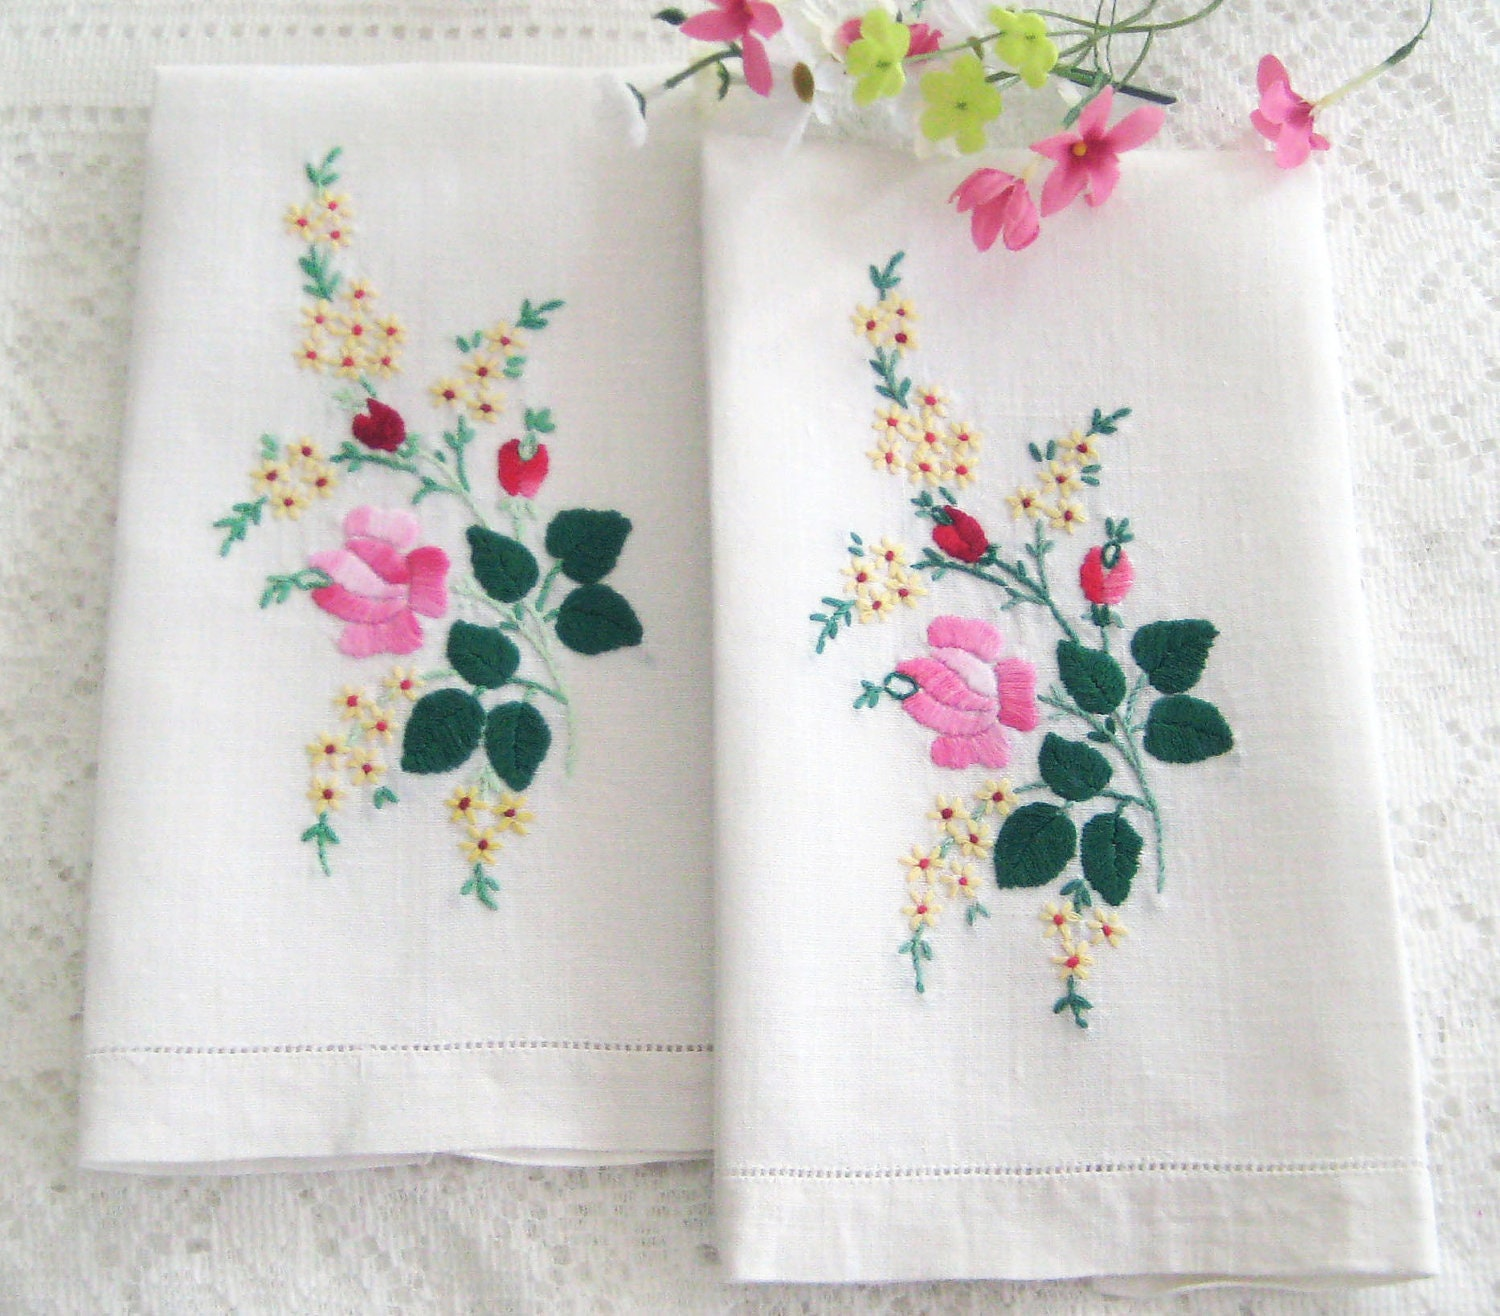 Rose Embroidered Towels: 2 Vintage Hand Towels. Embroidered Roses By